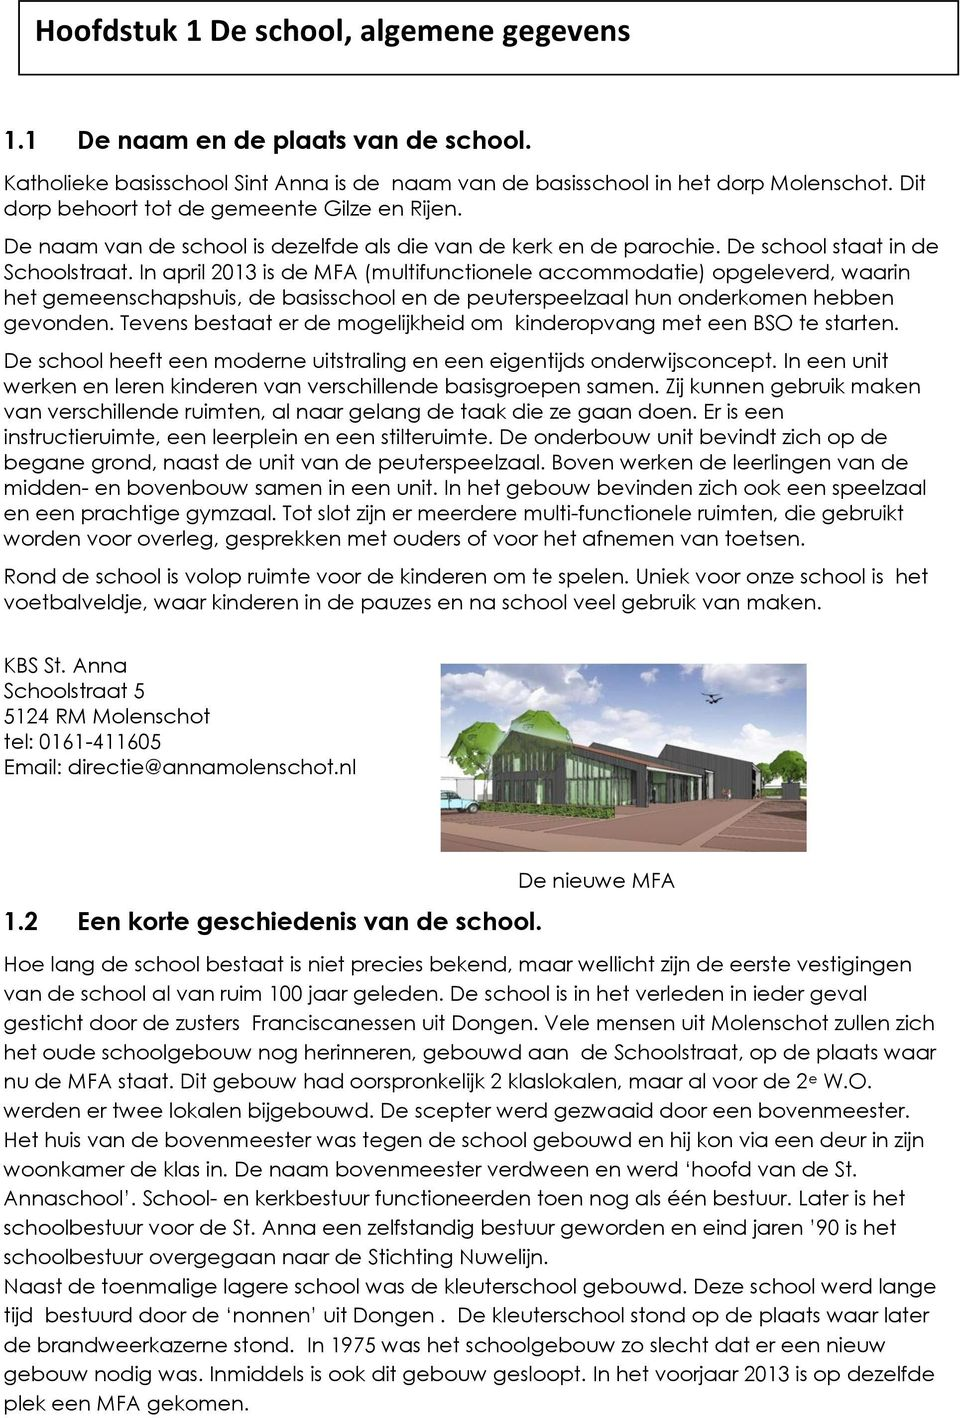 In april 2013 is de MFA (multifunctionele accommodatie) opgeleverd, waarin het gemeenschapshuis, de basisschool en de peuterspeelzaal hun onderkomen hebben gevonden.